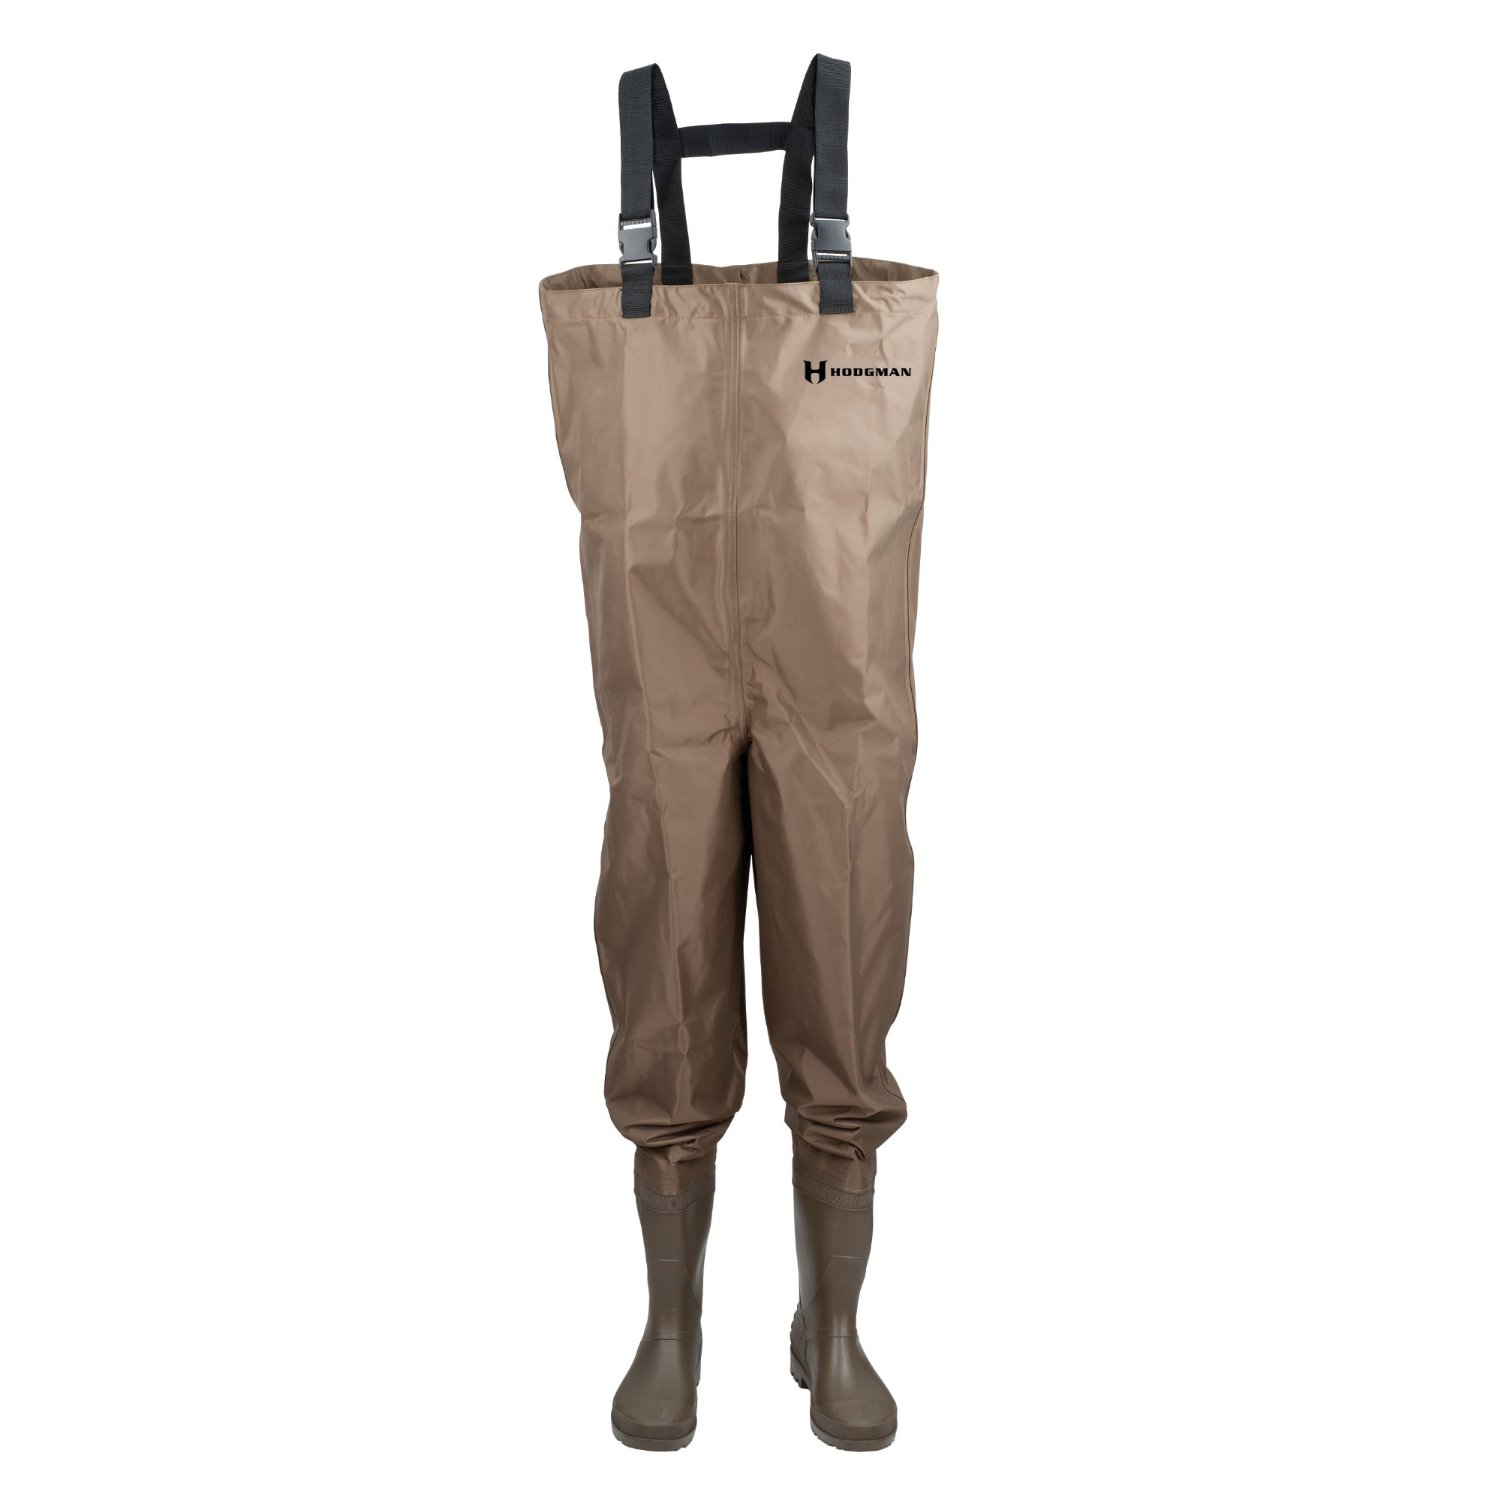 Waist high fishing boots